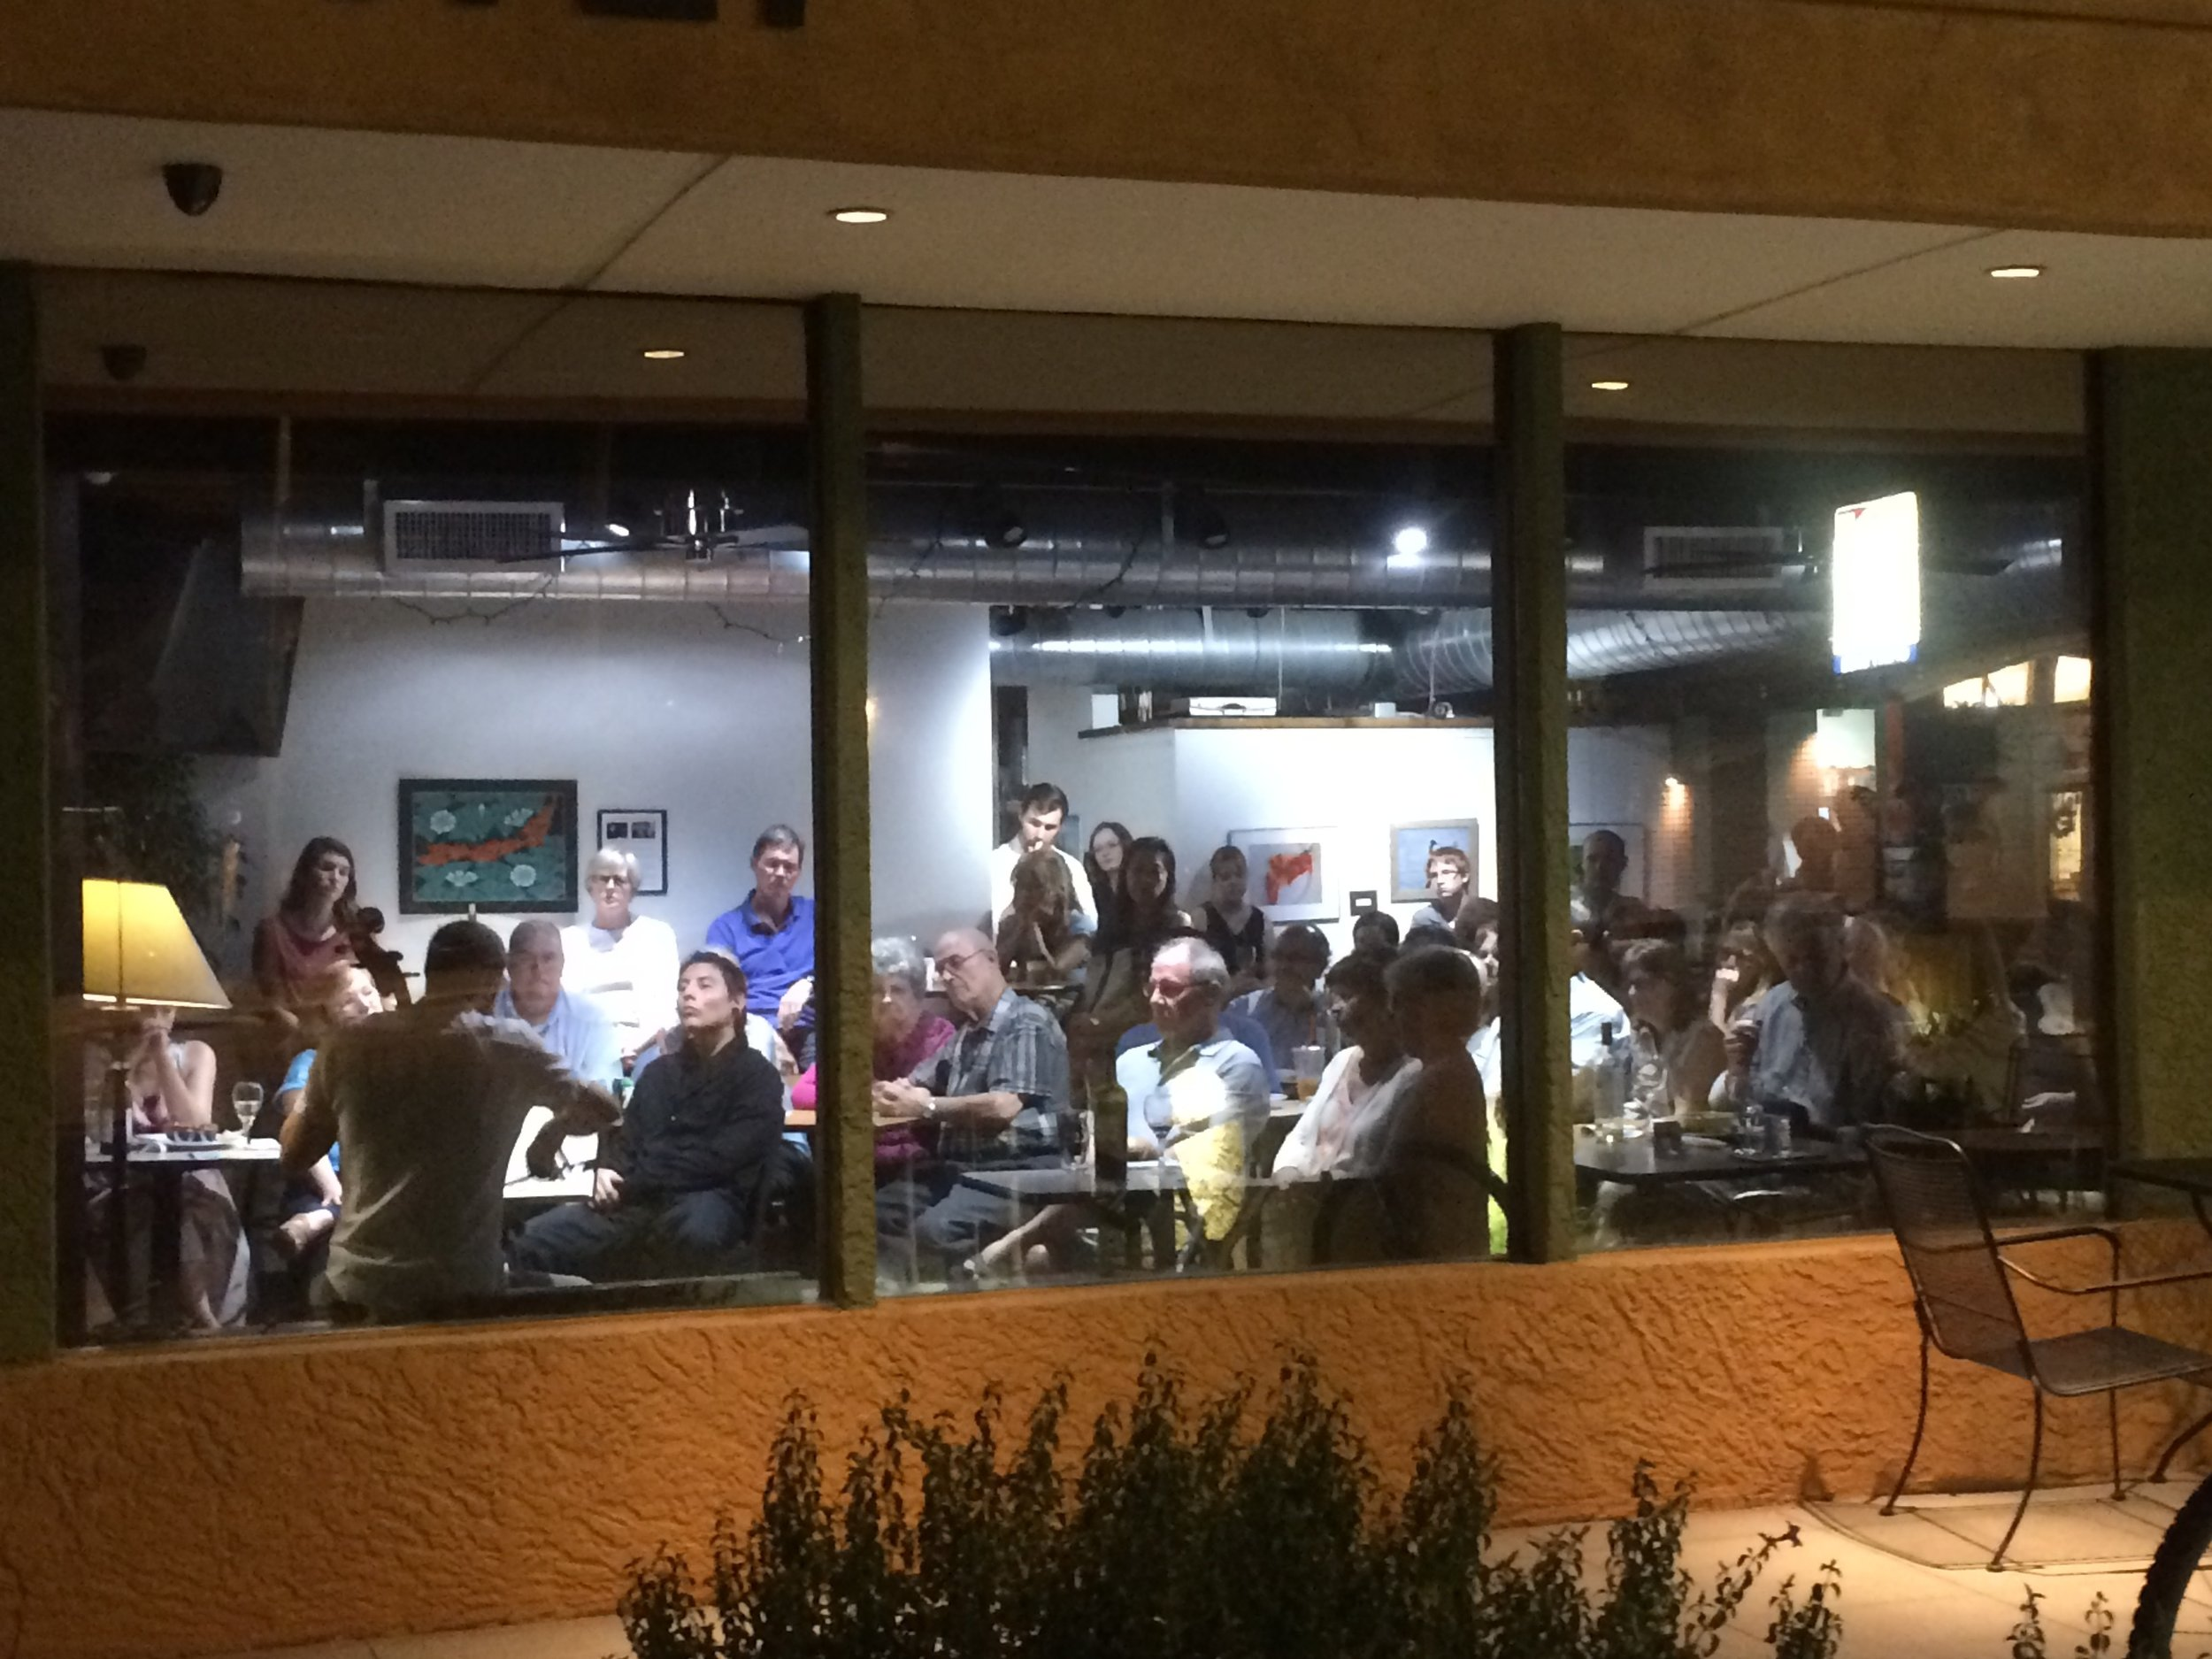 A view from outside Arizona's cafe concert